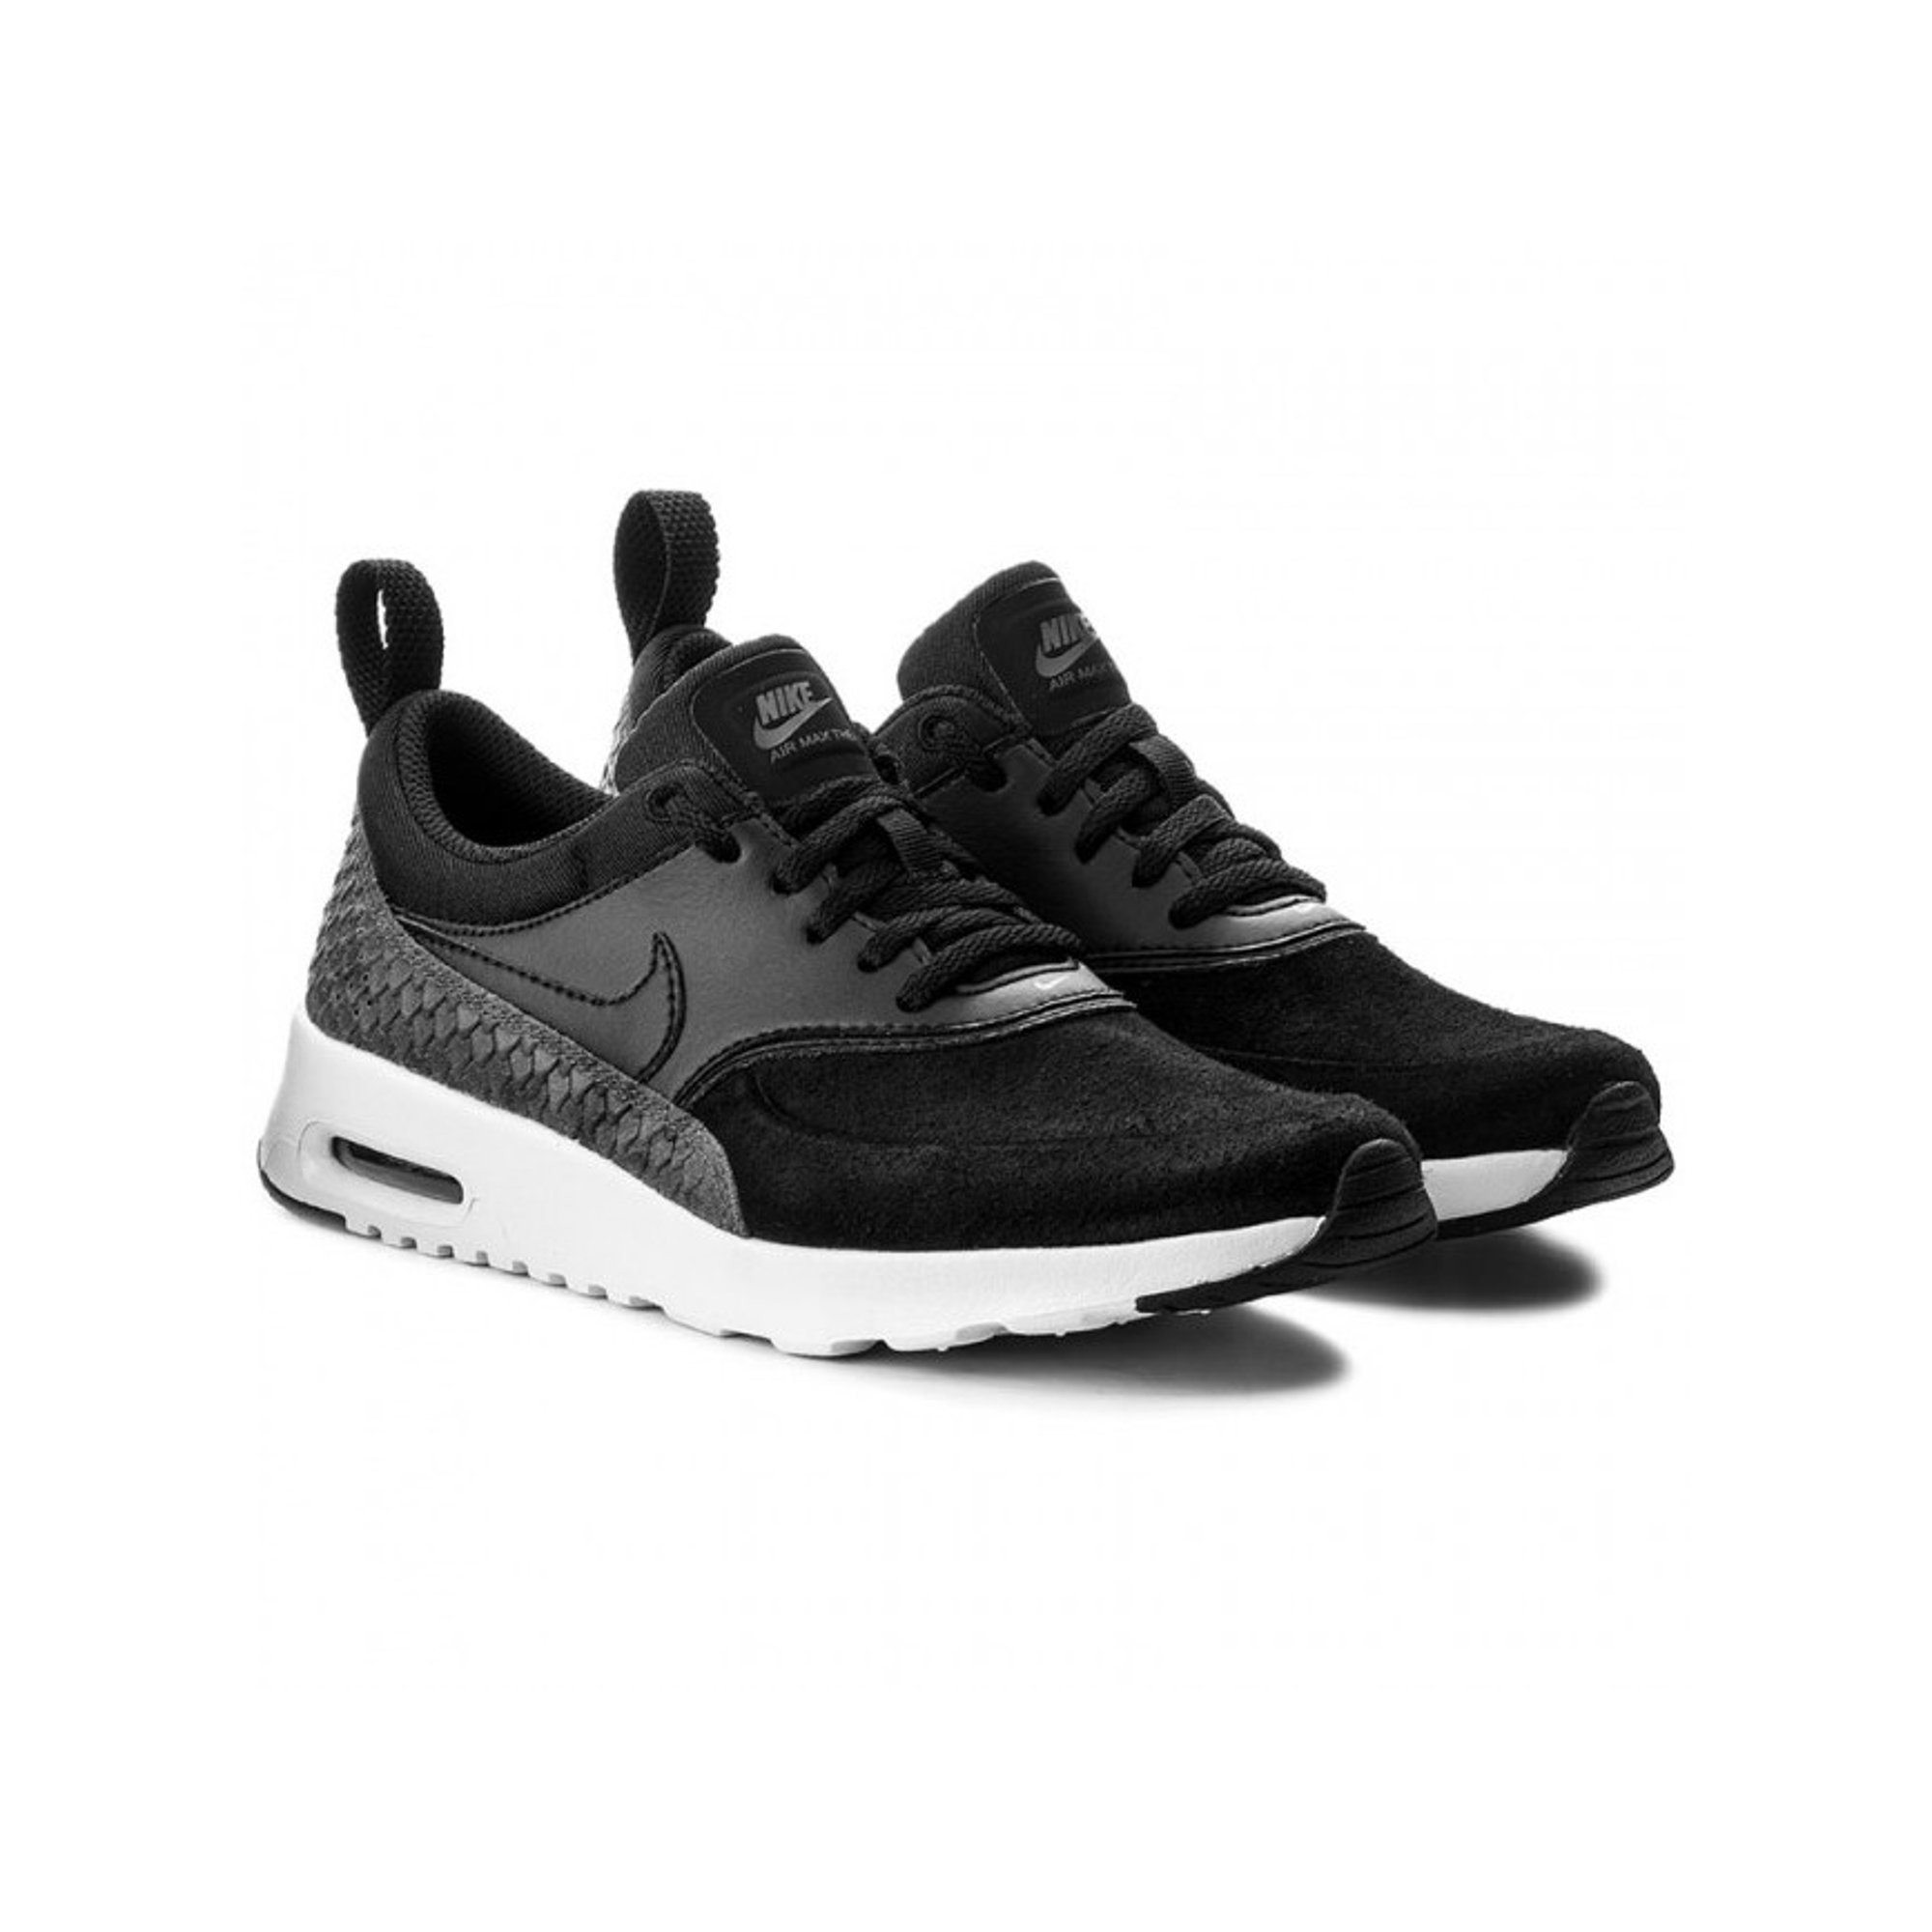 grand choix de c6ac8 a40ba Nike Womens Air Max Thea PRM Low Top Lace Up Running Sneaker